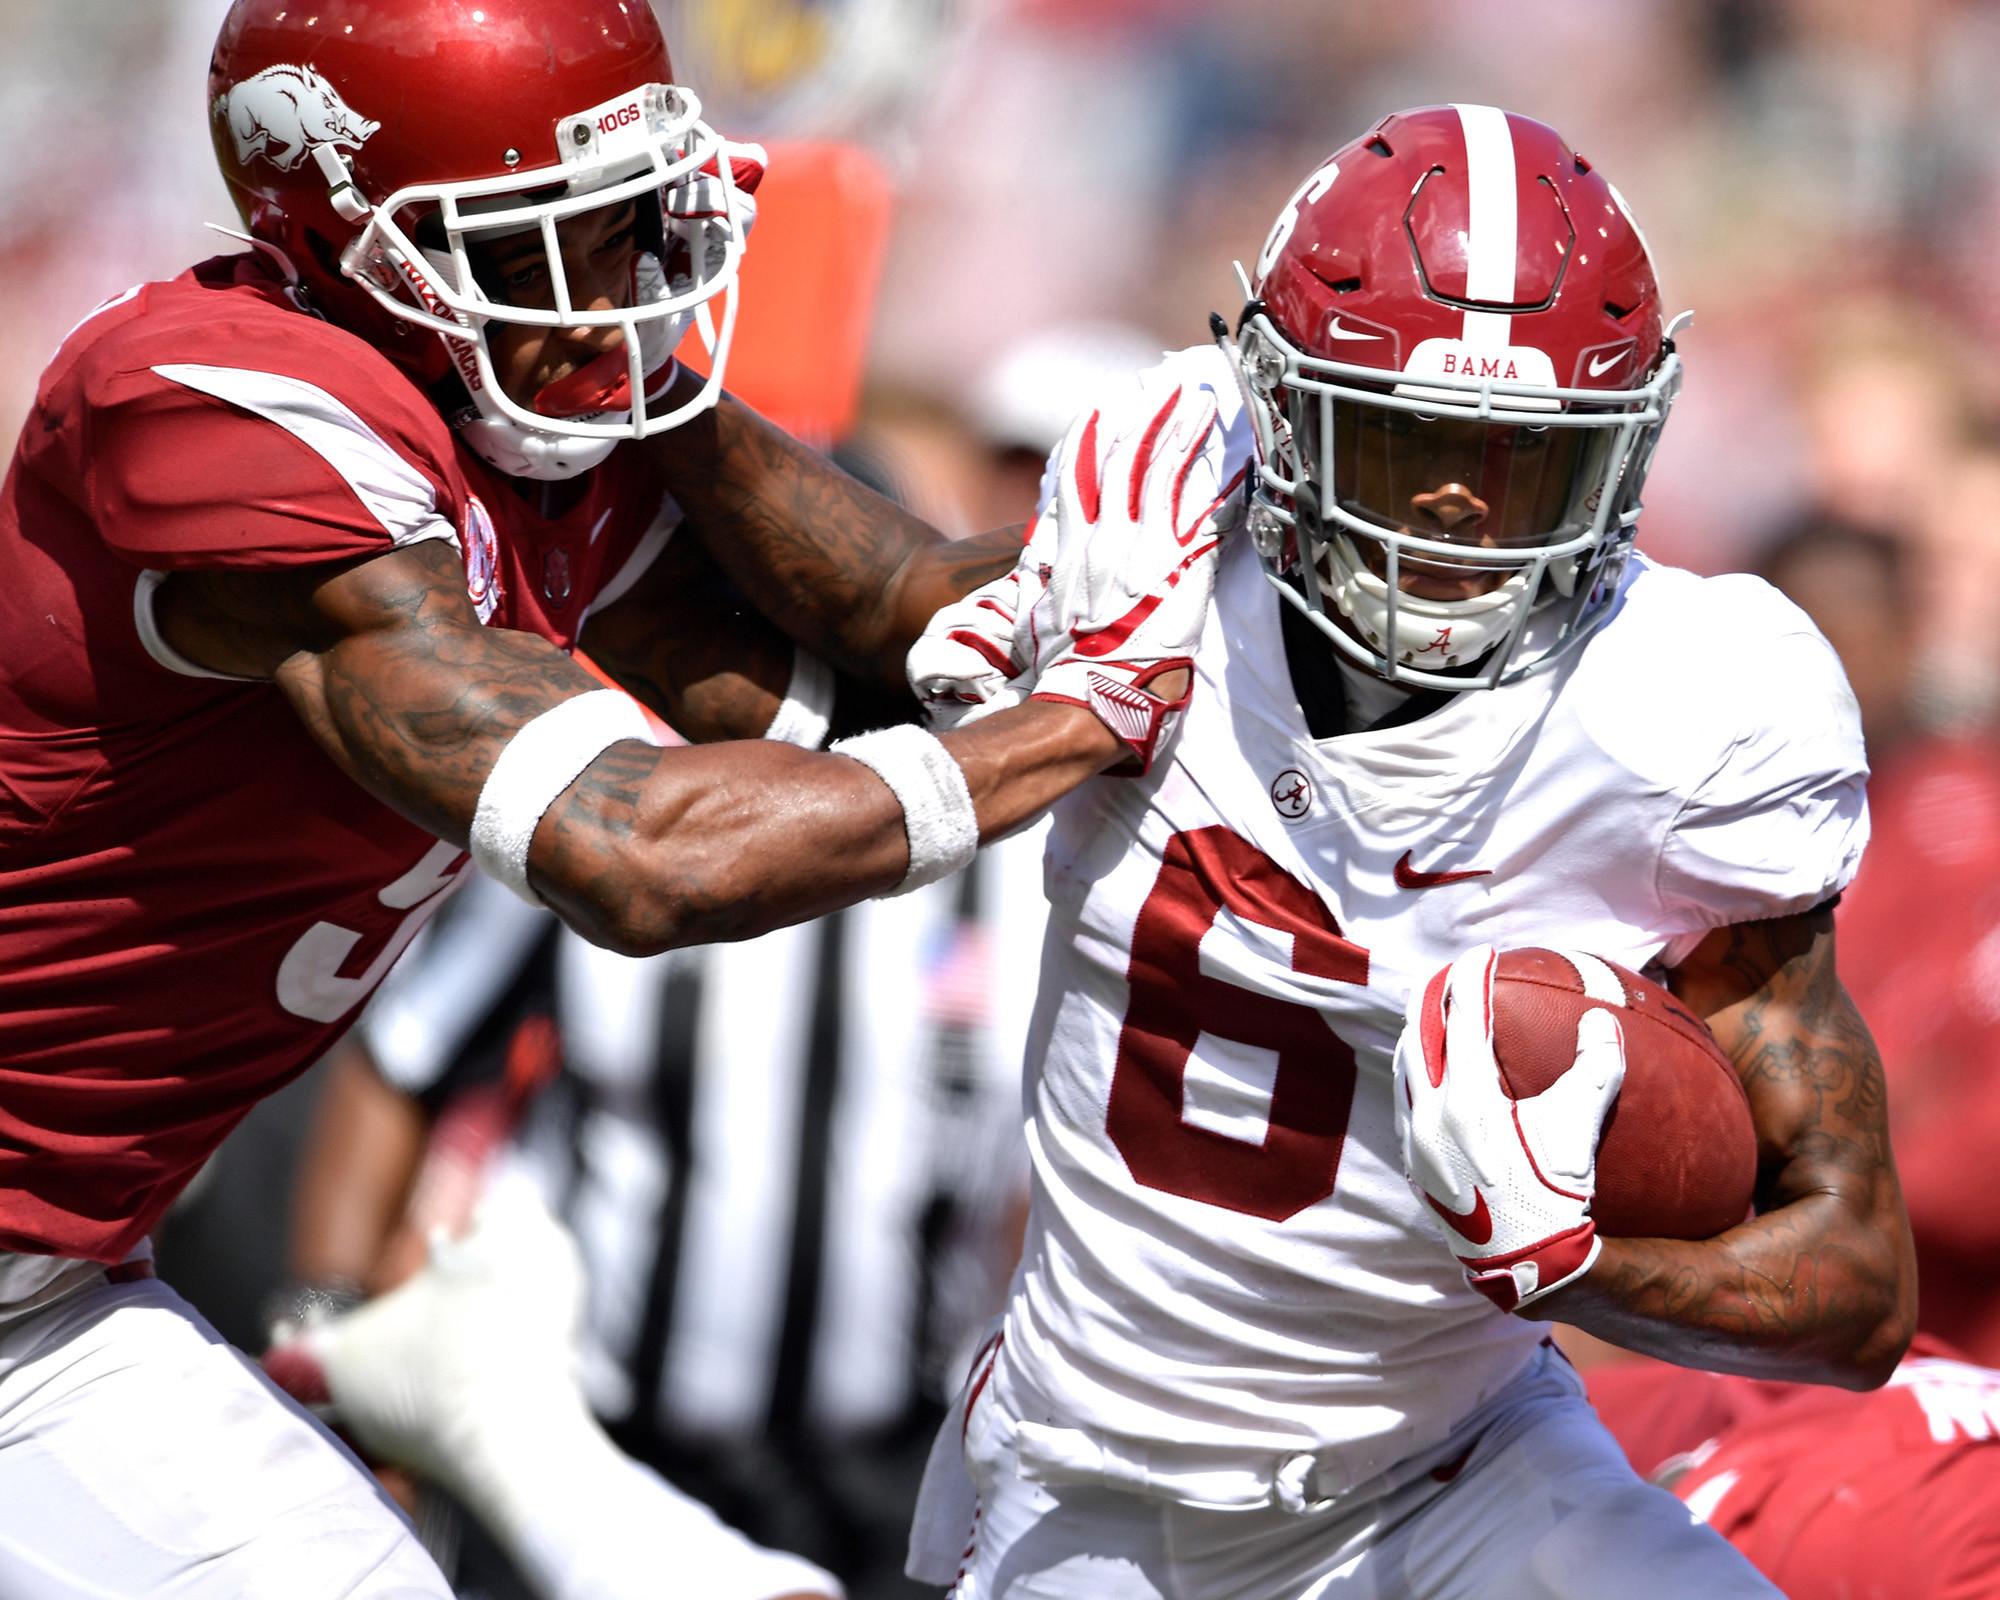 Alabama Crimson Tide wide receiver DeVonta Smith (6) adds yards after the reception in the second half of the NCAA football game against the Arkansas Razorbacks at Razorback Stadium on Oct. 6, 2018, in Fayetteville, Ark. Alabama defeated Arkansas 65-31. (Photo by Lee Walls)